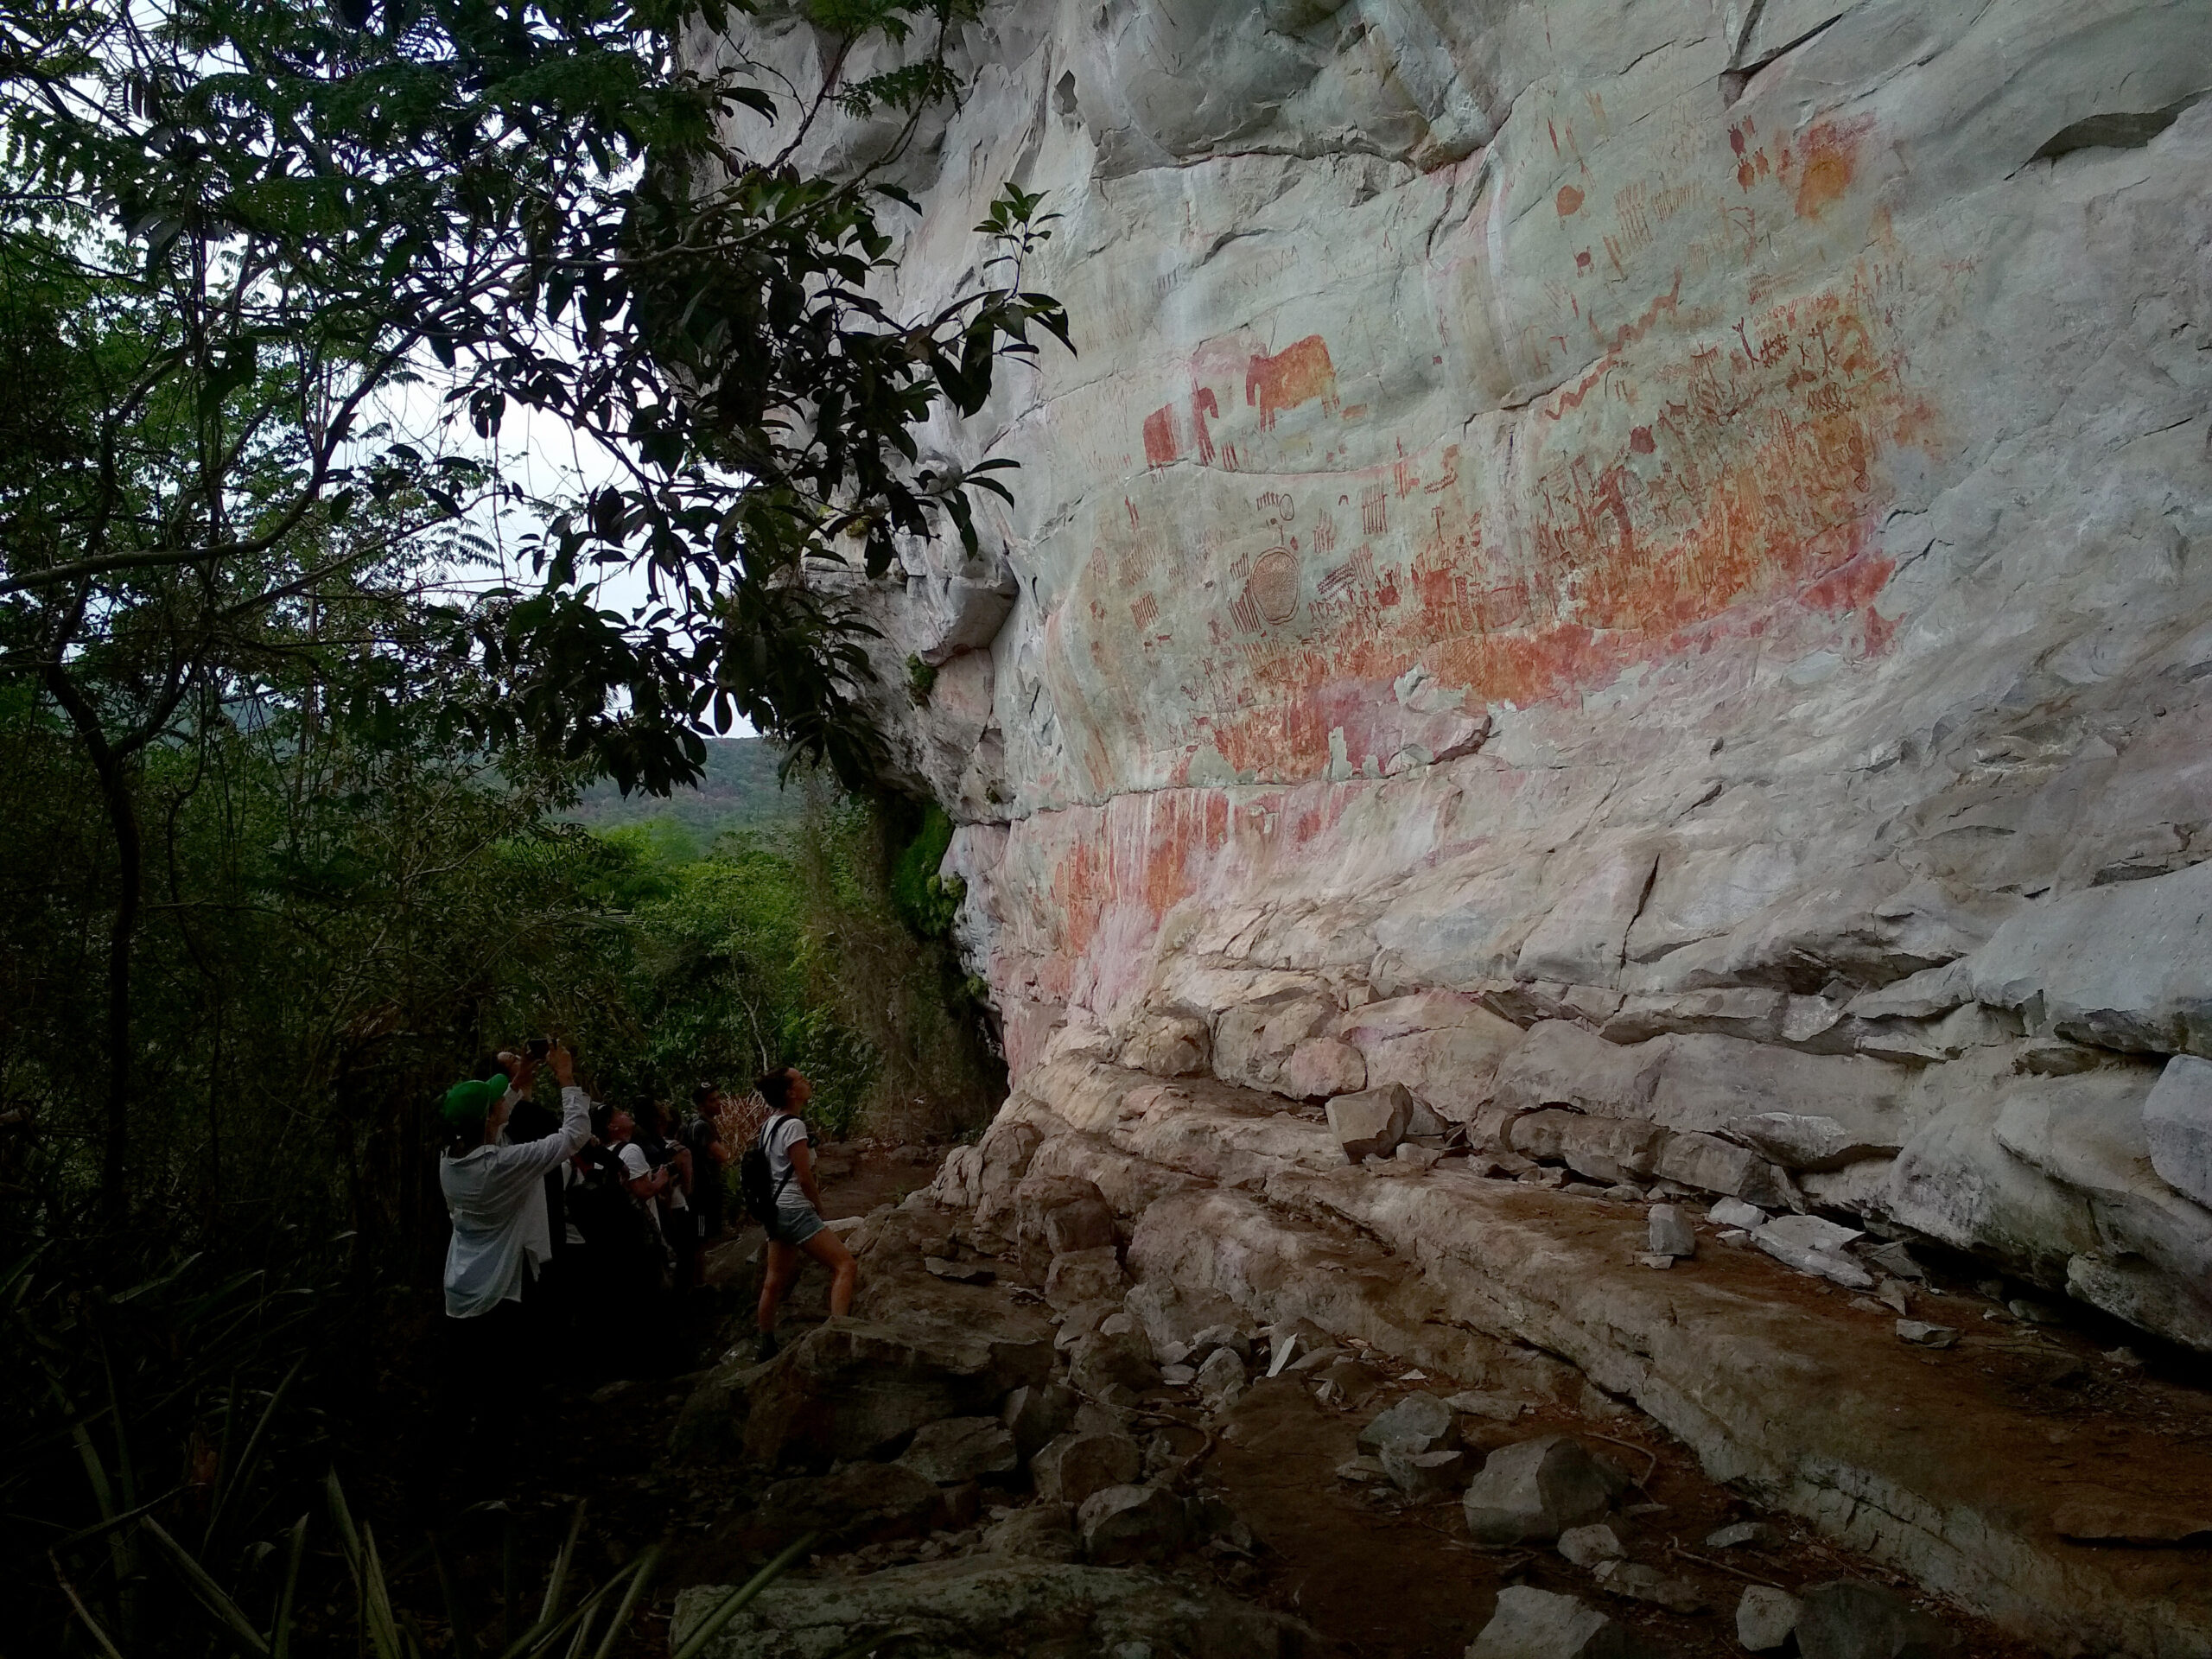 <i>Courtesy Vive Guaviare/Marcel Reina</i><br/>The stunning rock art discovery was made in 2017 as part of an expedition named